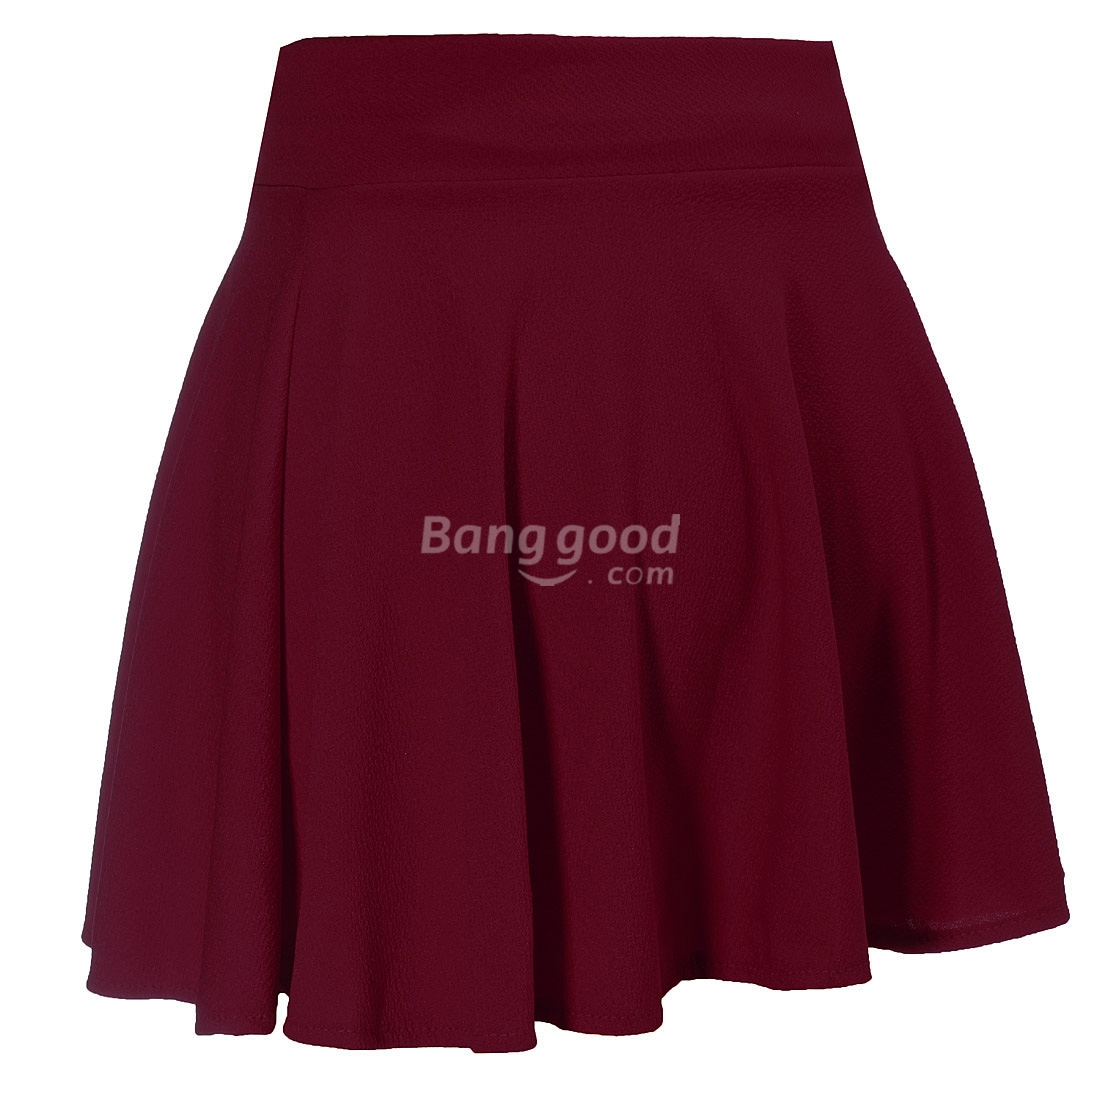 Ladies High Waist Plain Pleated Flared Mini Skater Skirt Free Shipping!  - US$5.99